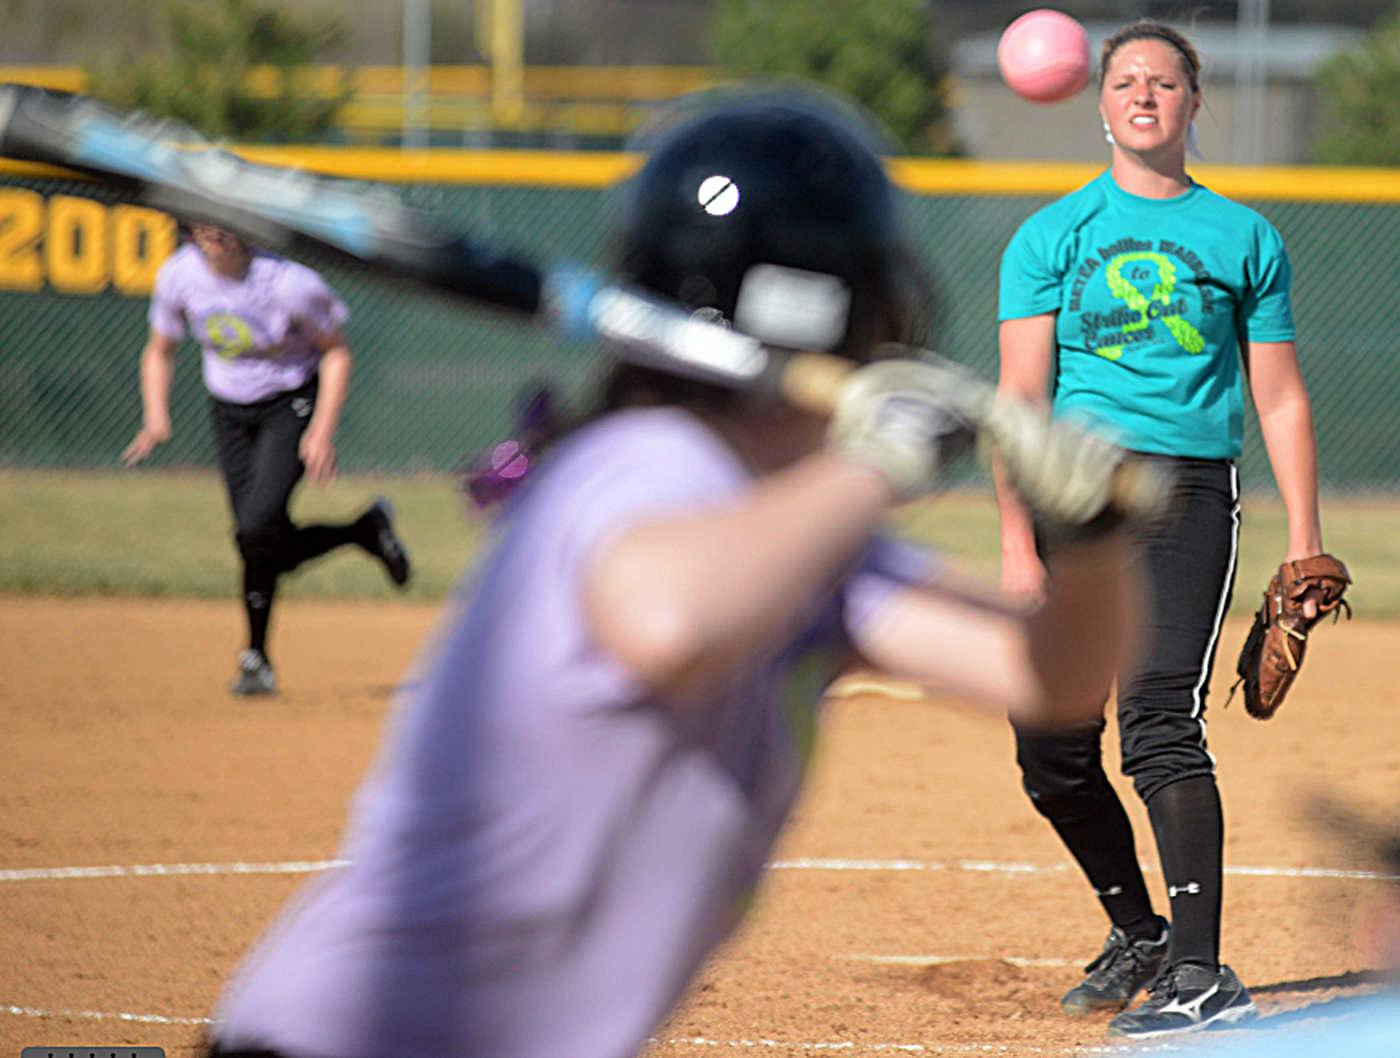 "Waubonsie Valley hurler Shannon Hohman, right, watches her offering to Metea Valley hitter Megan Arcivar during a varsity softball game at Metea Valley on Friday. Both teams worse special jerseys for the game which was themed ""Strike Out Cancer"". Various fundraising efforts, including a 50/50 raffle and bake sale, were offered to fans to raise money to fight pediatric cancer."